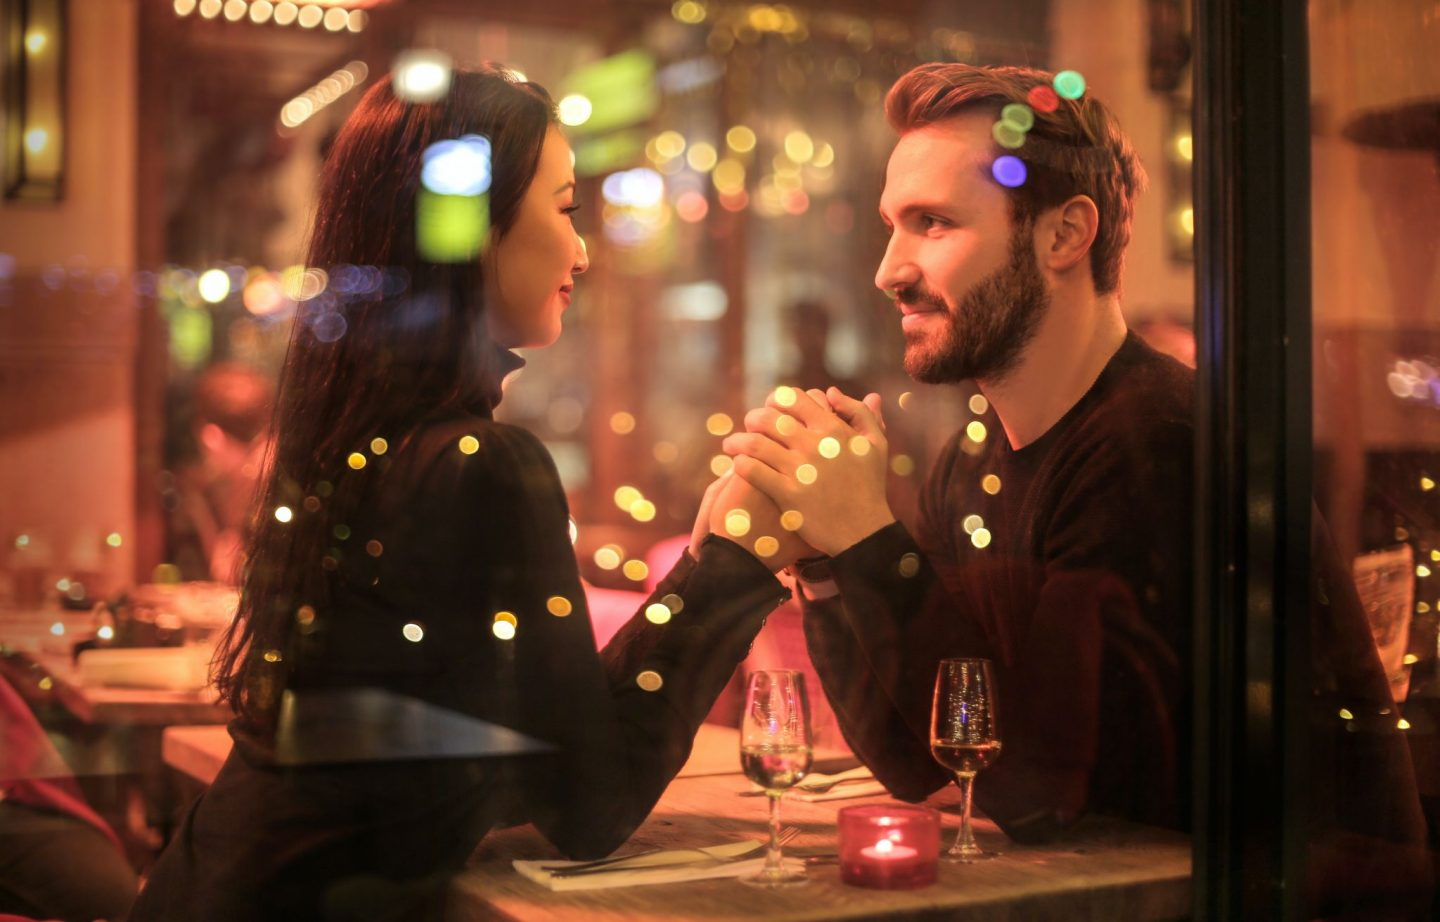 THE DO'S AND DON'TS OF DATING WHILE ABROAD